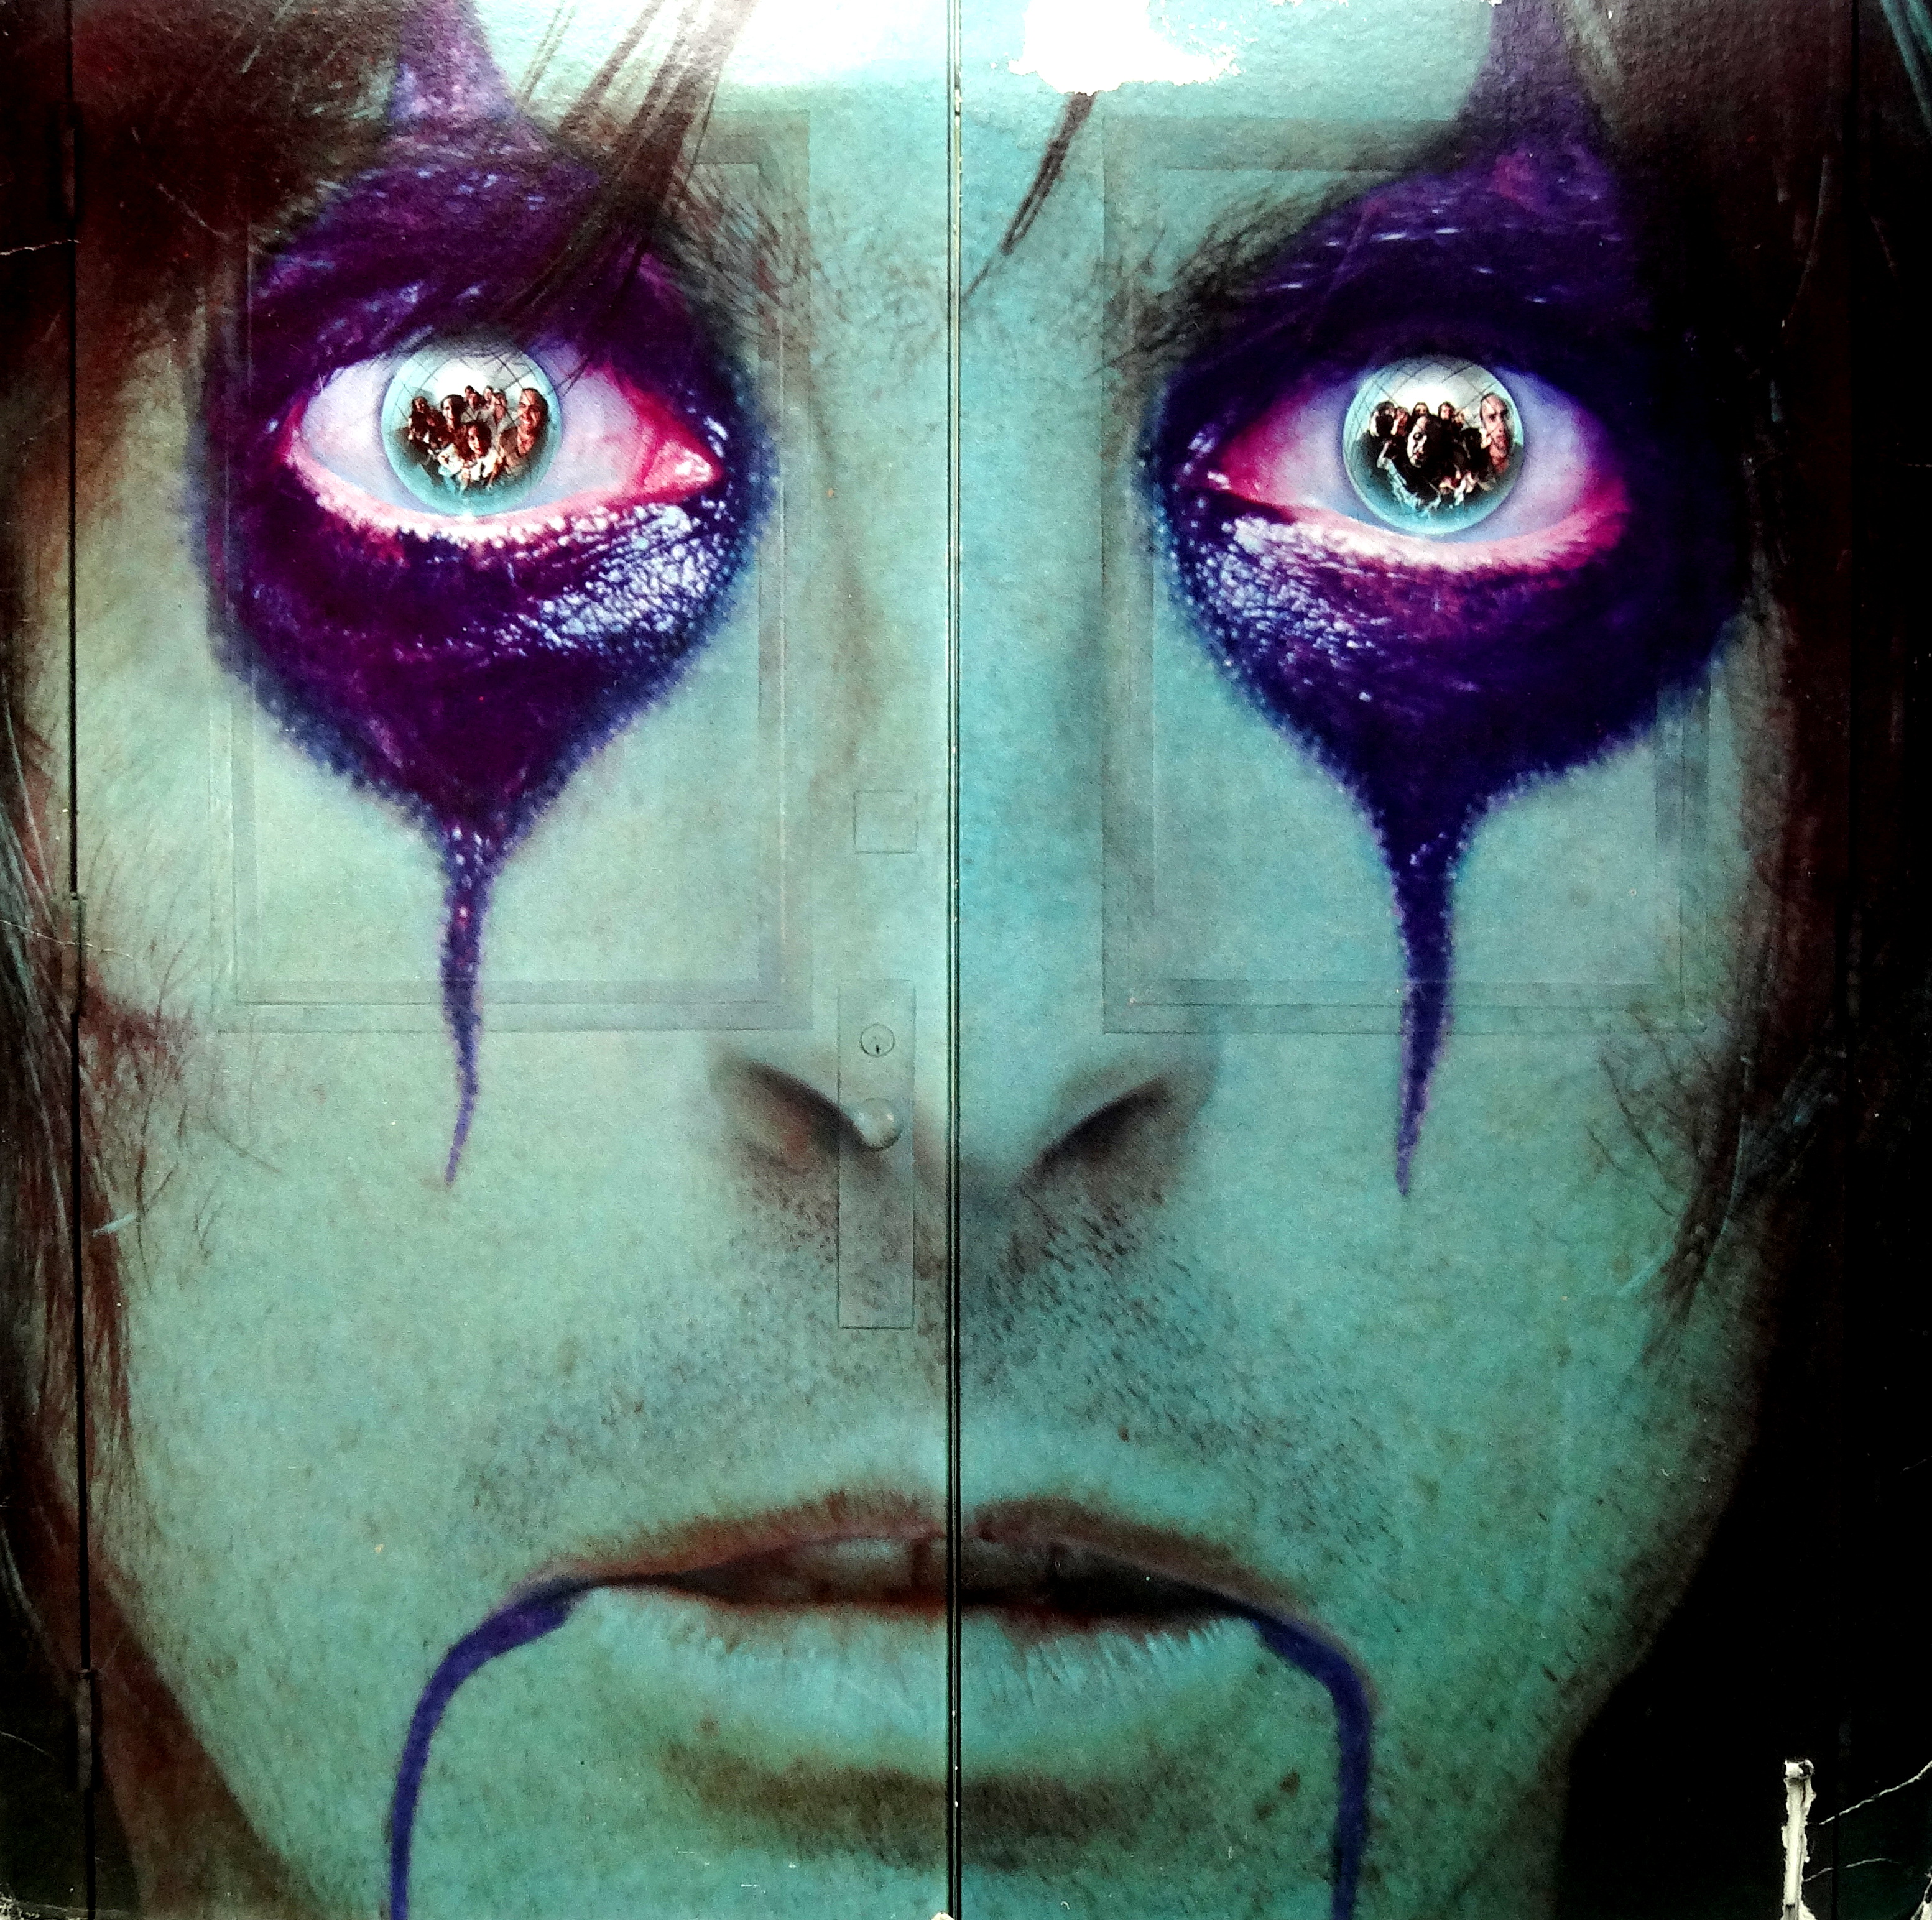 What's Your Favorite Alice Cooper Tune?